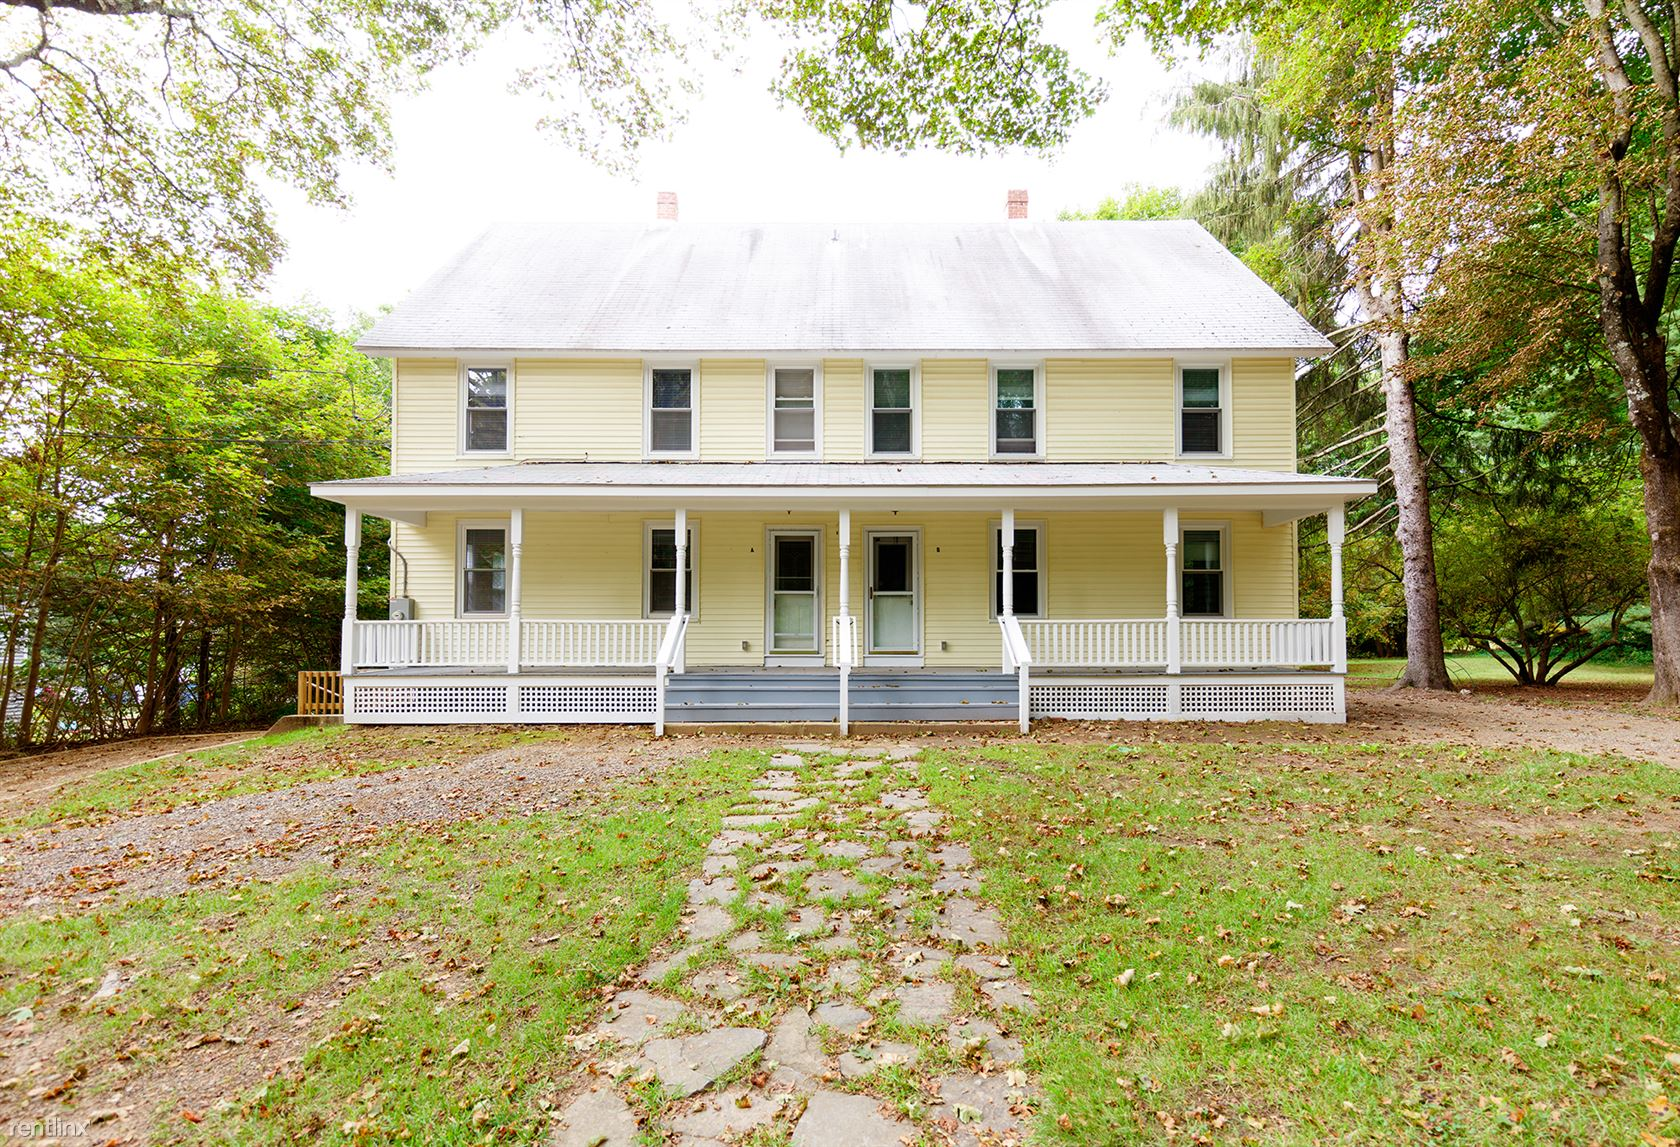 17 Pollack Rd, Mansfield Center, CT - $1,850